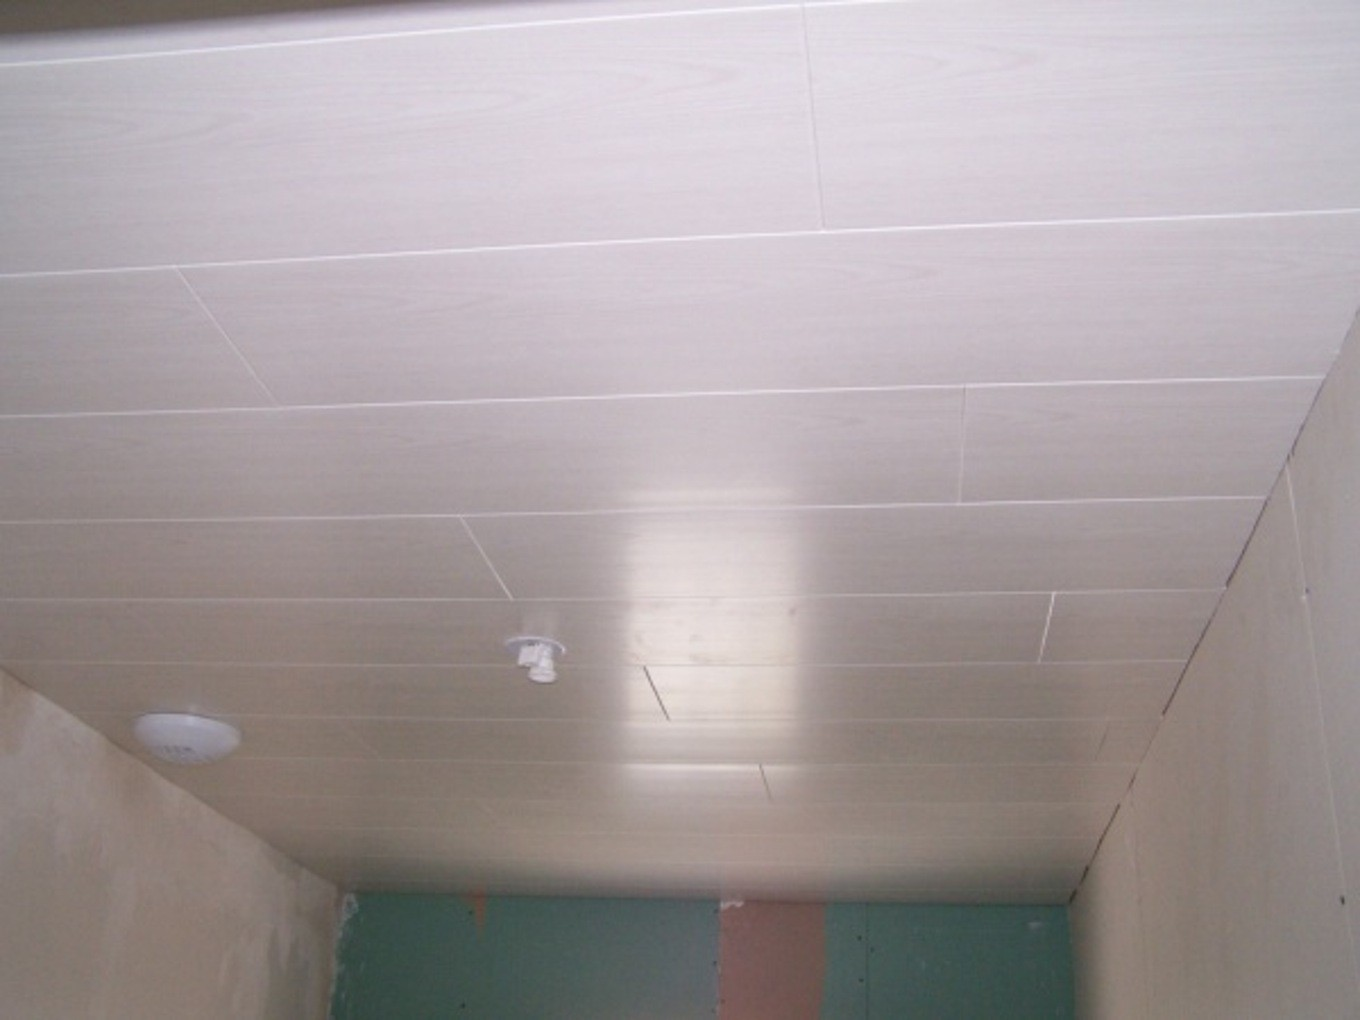 Plafond De Salle De Bain En Pvc Plafond Salle De Bain Pvc Beautiful Lame High Resolution Wallpaper